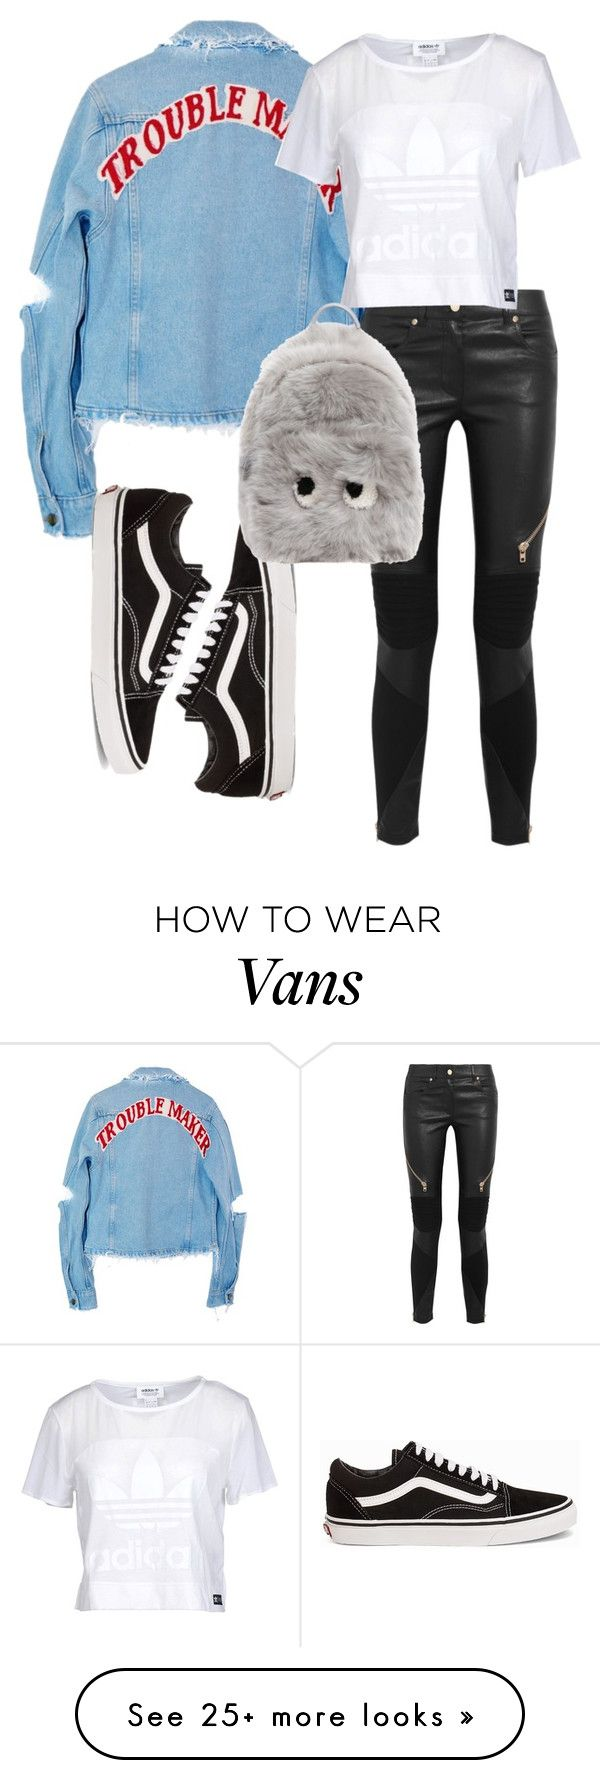 """Untitled #436"" by yourstrulyemz on Polyvore featuring High Heels Suicide, Givenchy, adidas Originals, Vans and Anya Hindmarch"